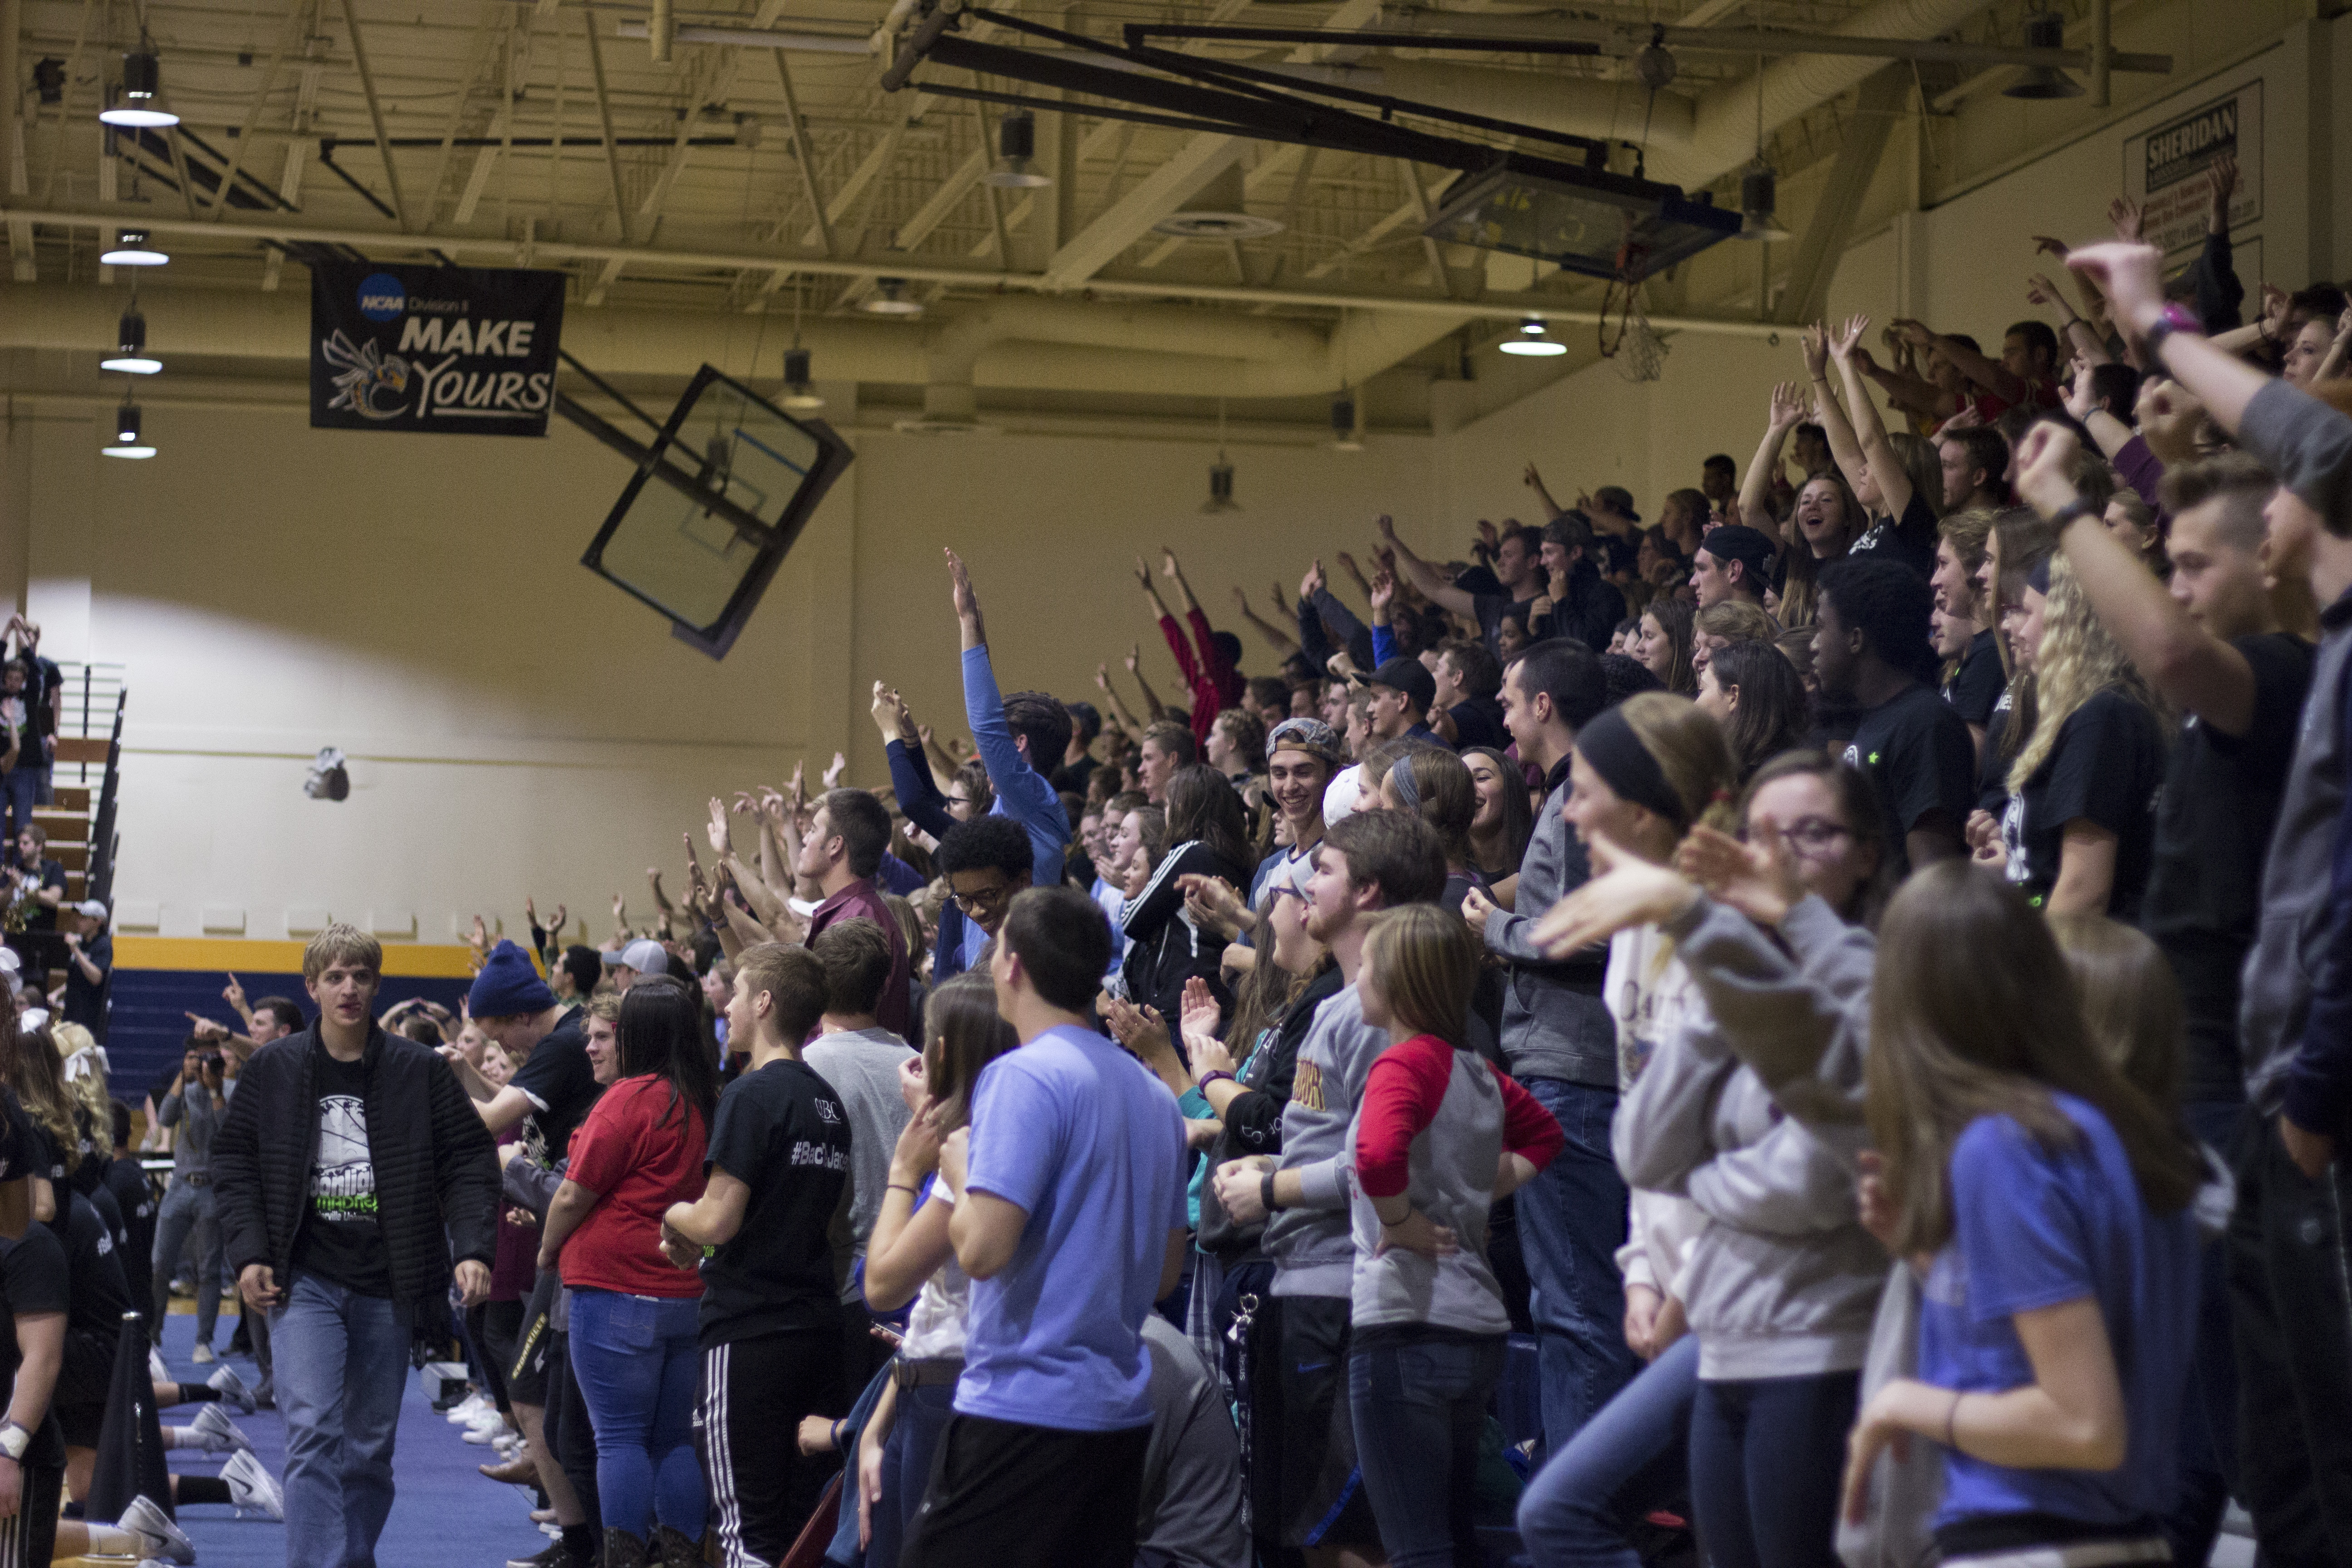 The student turnout was one that Coach Estepp says he hopes to see at every basketball game.